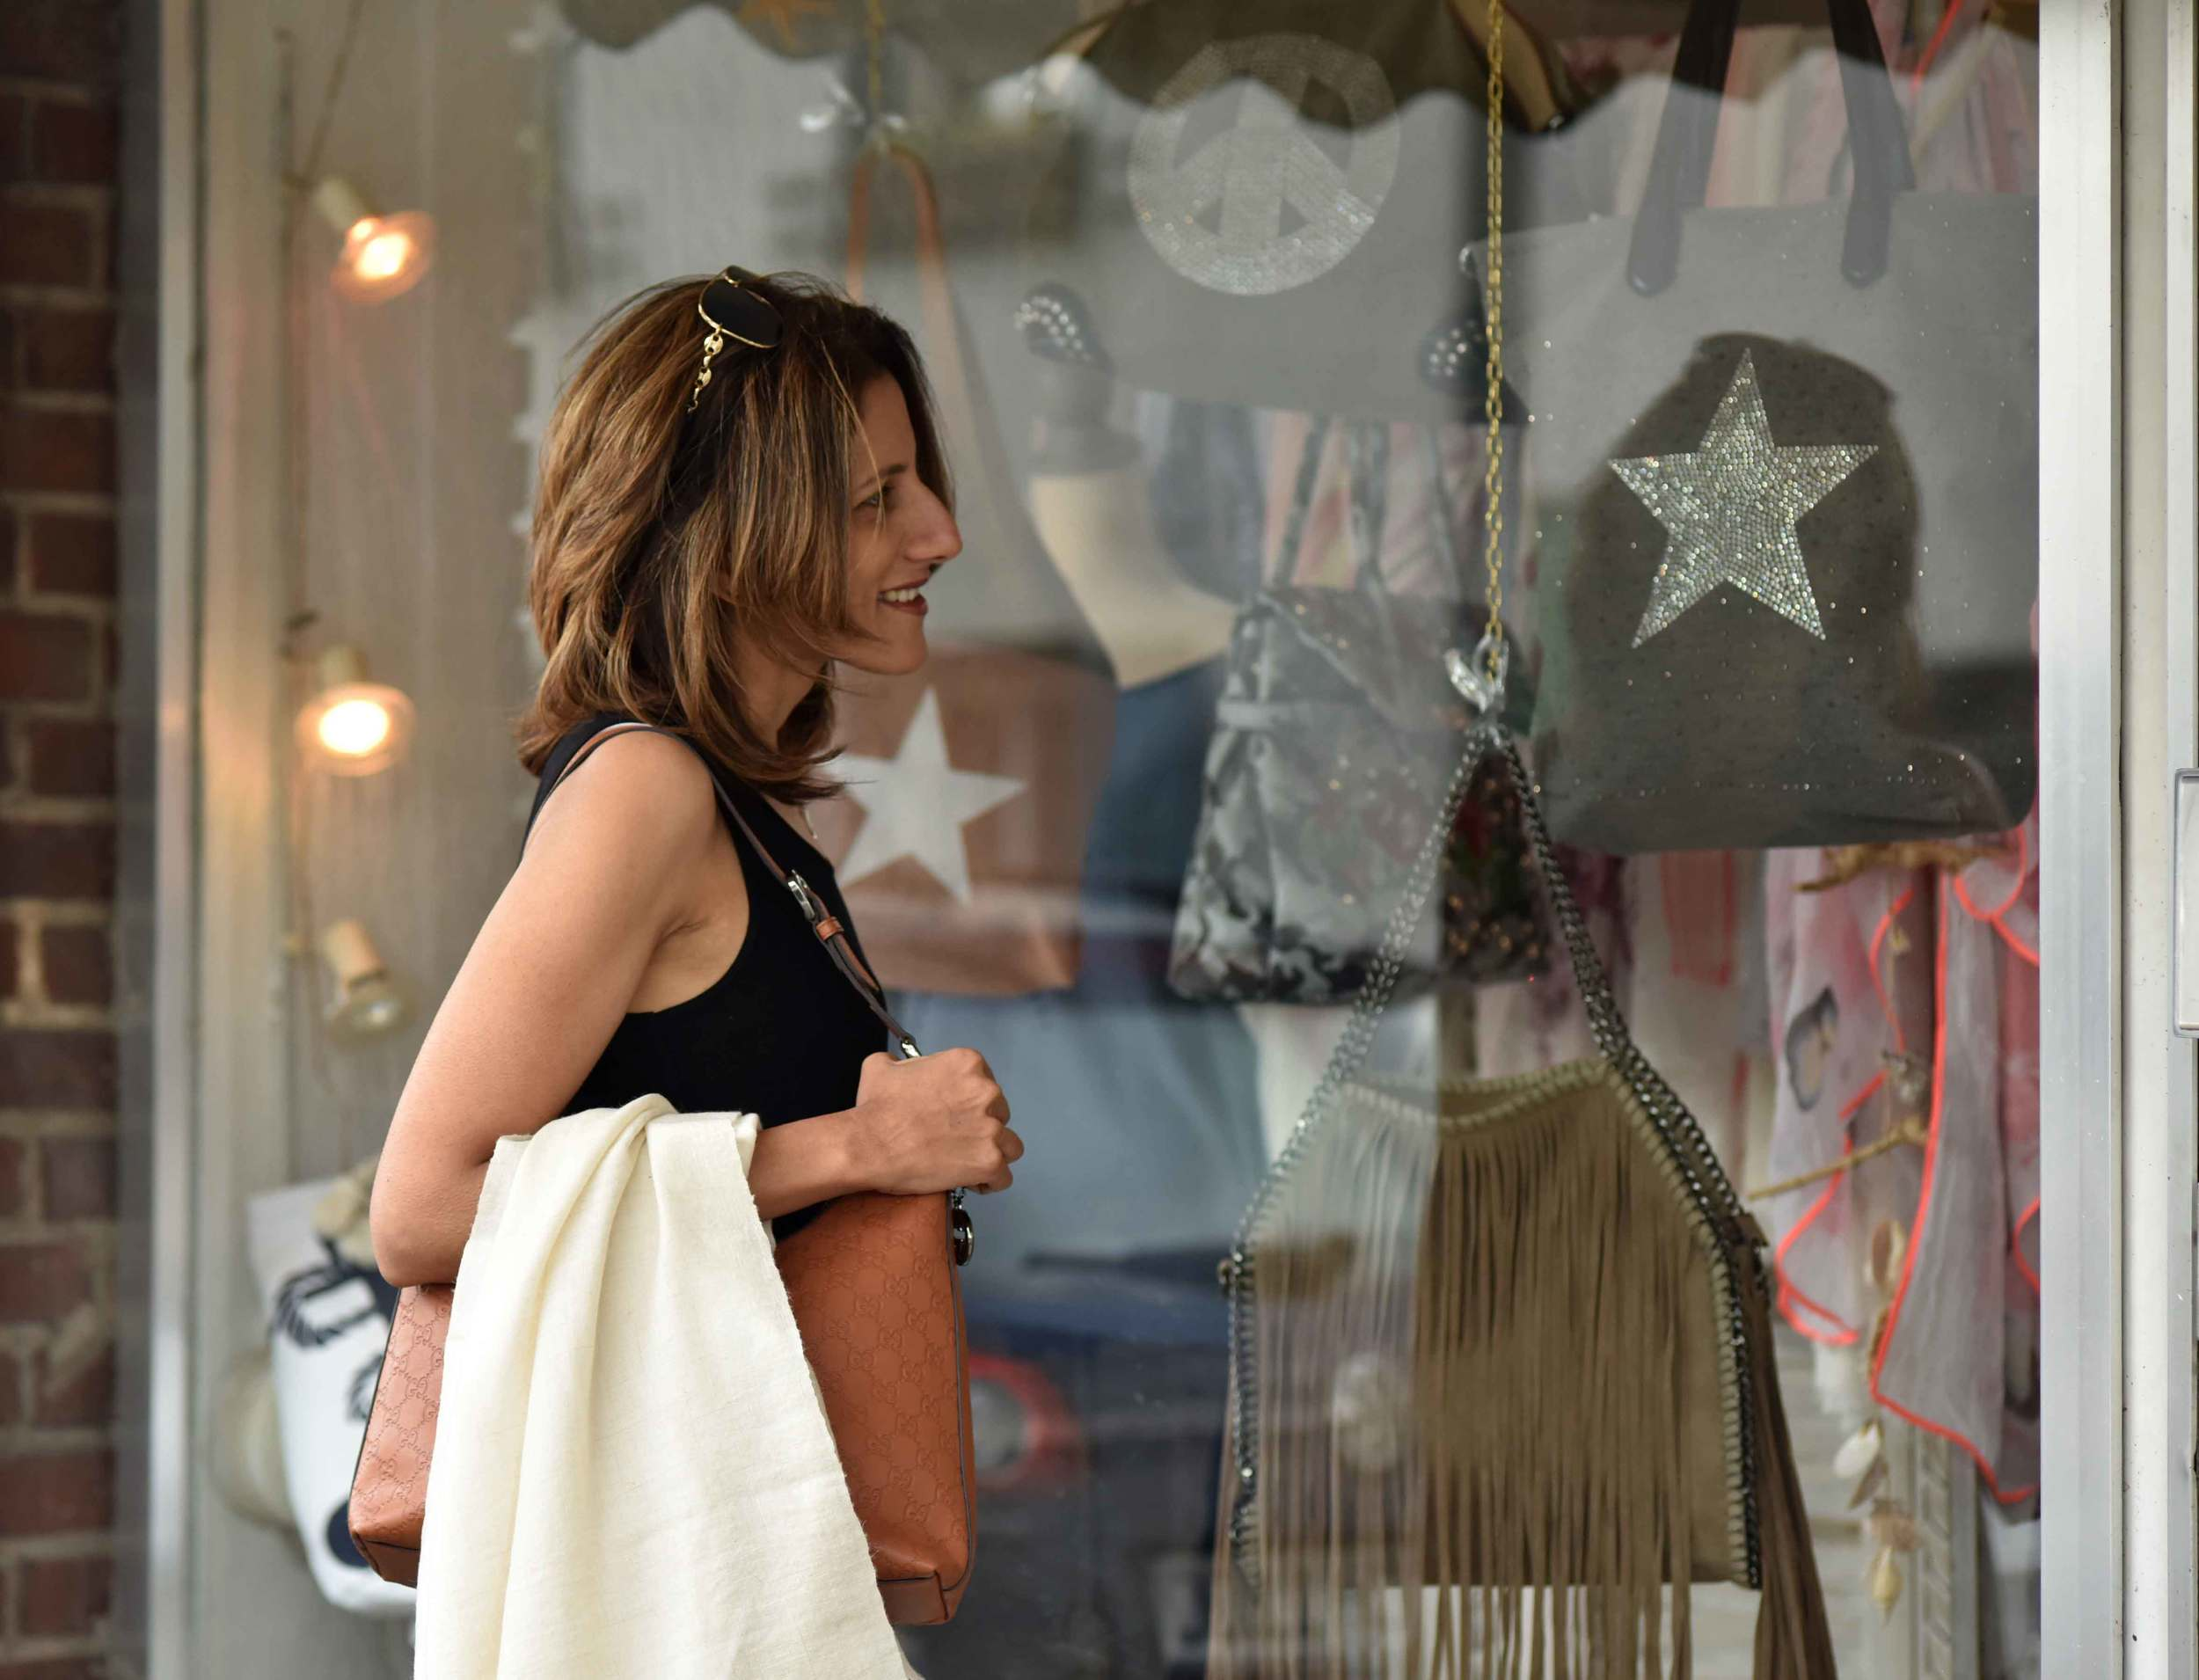 Eileen Fisher black tank dress in viscose jersey, little black dress, cashmere wrap hand-made from Kashmir, India, Gucci handbag. Image©sourcingstyle.com, Photo: Nicola Nolting.